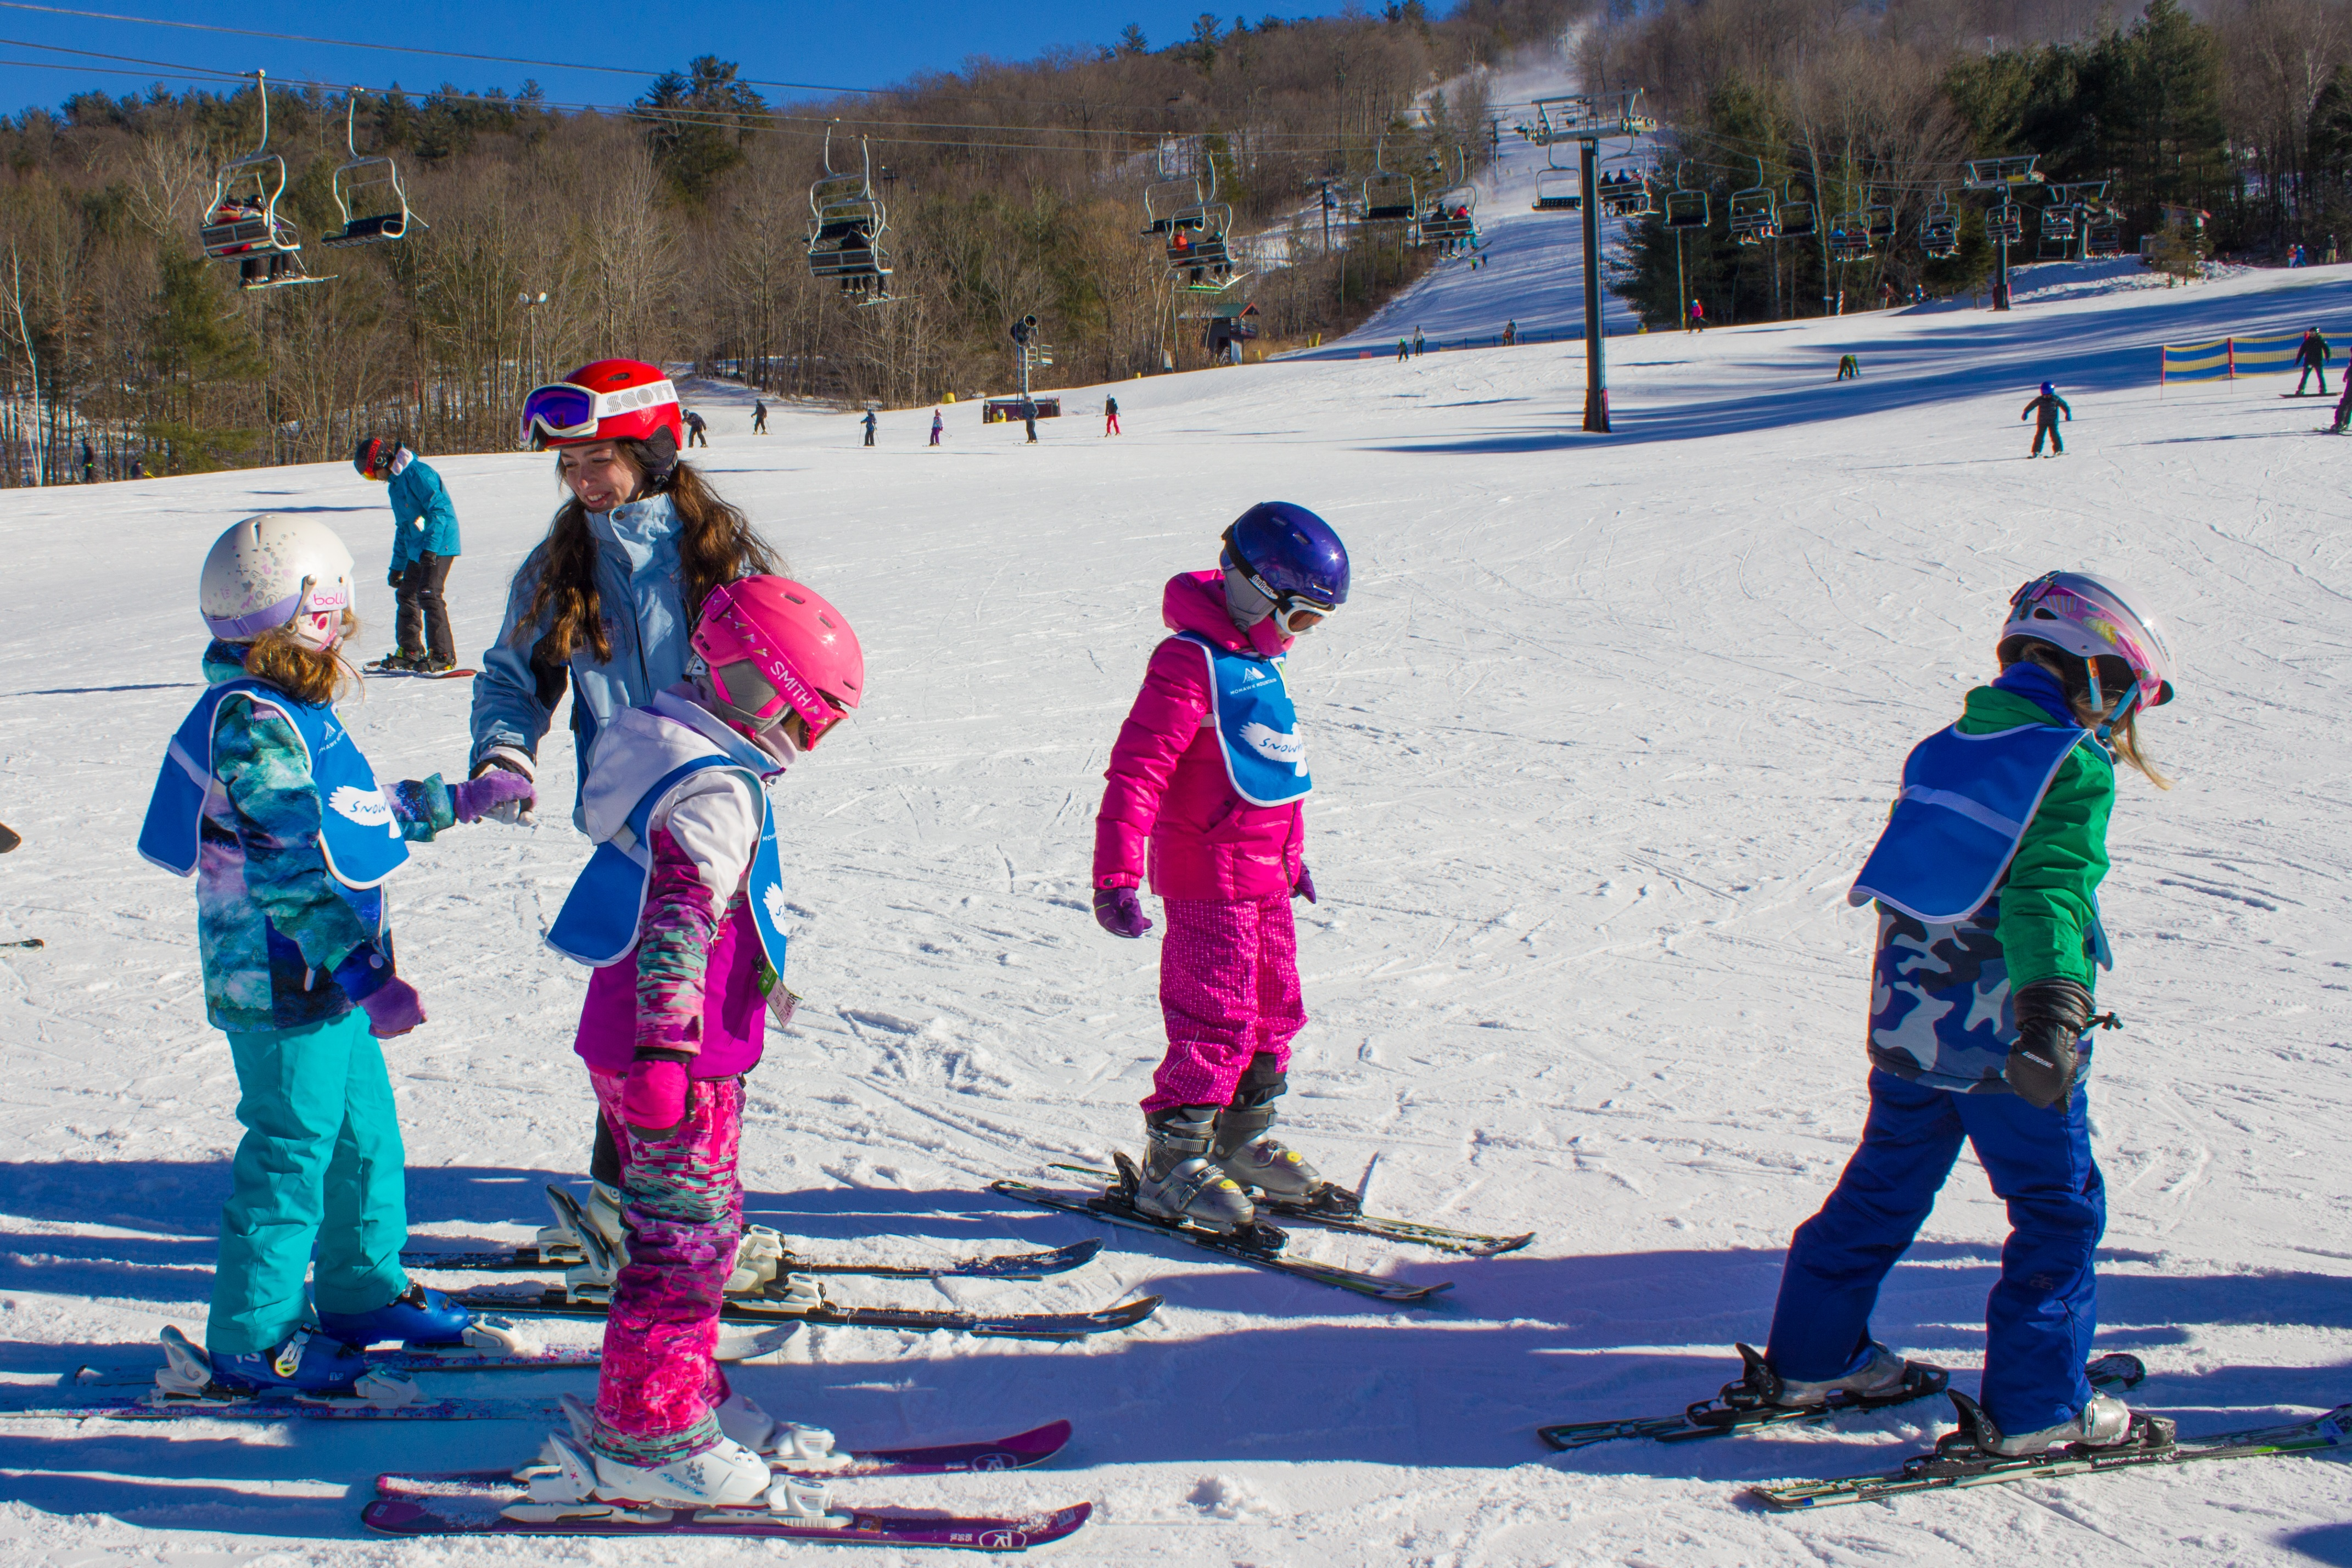 631db8cca3 10 Family Ski Resorts In and Near Connecticut  The Lowdown